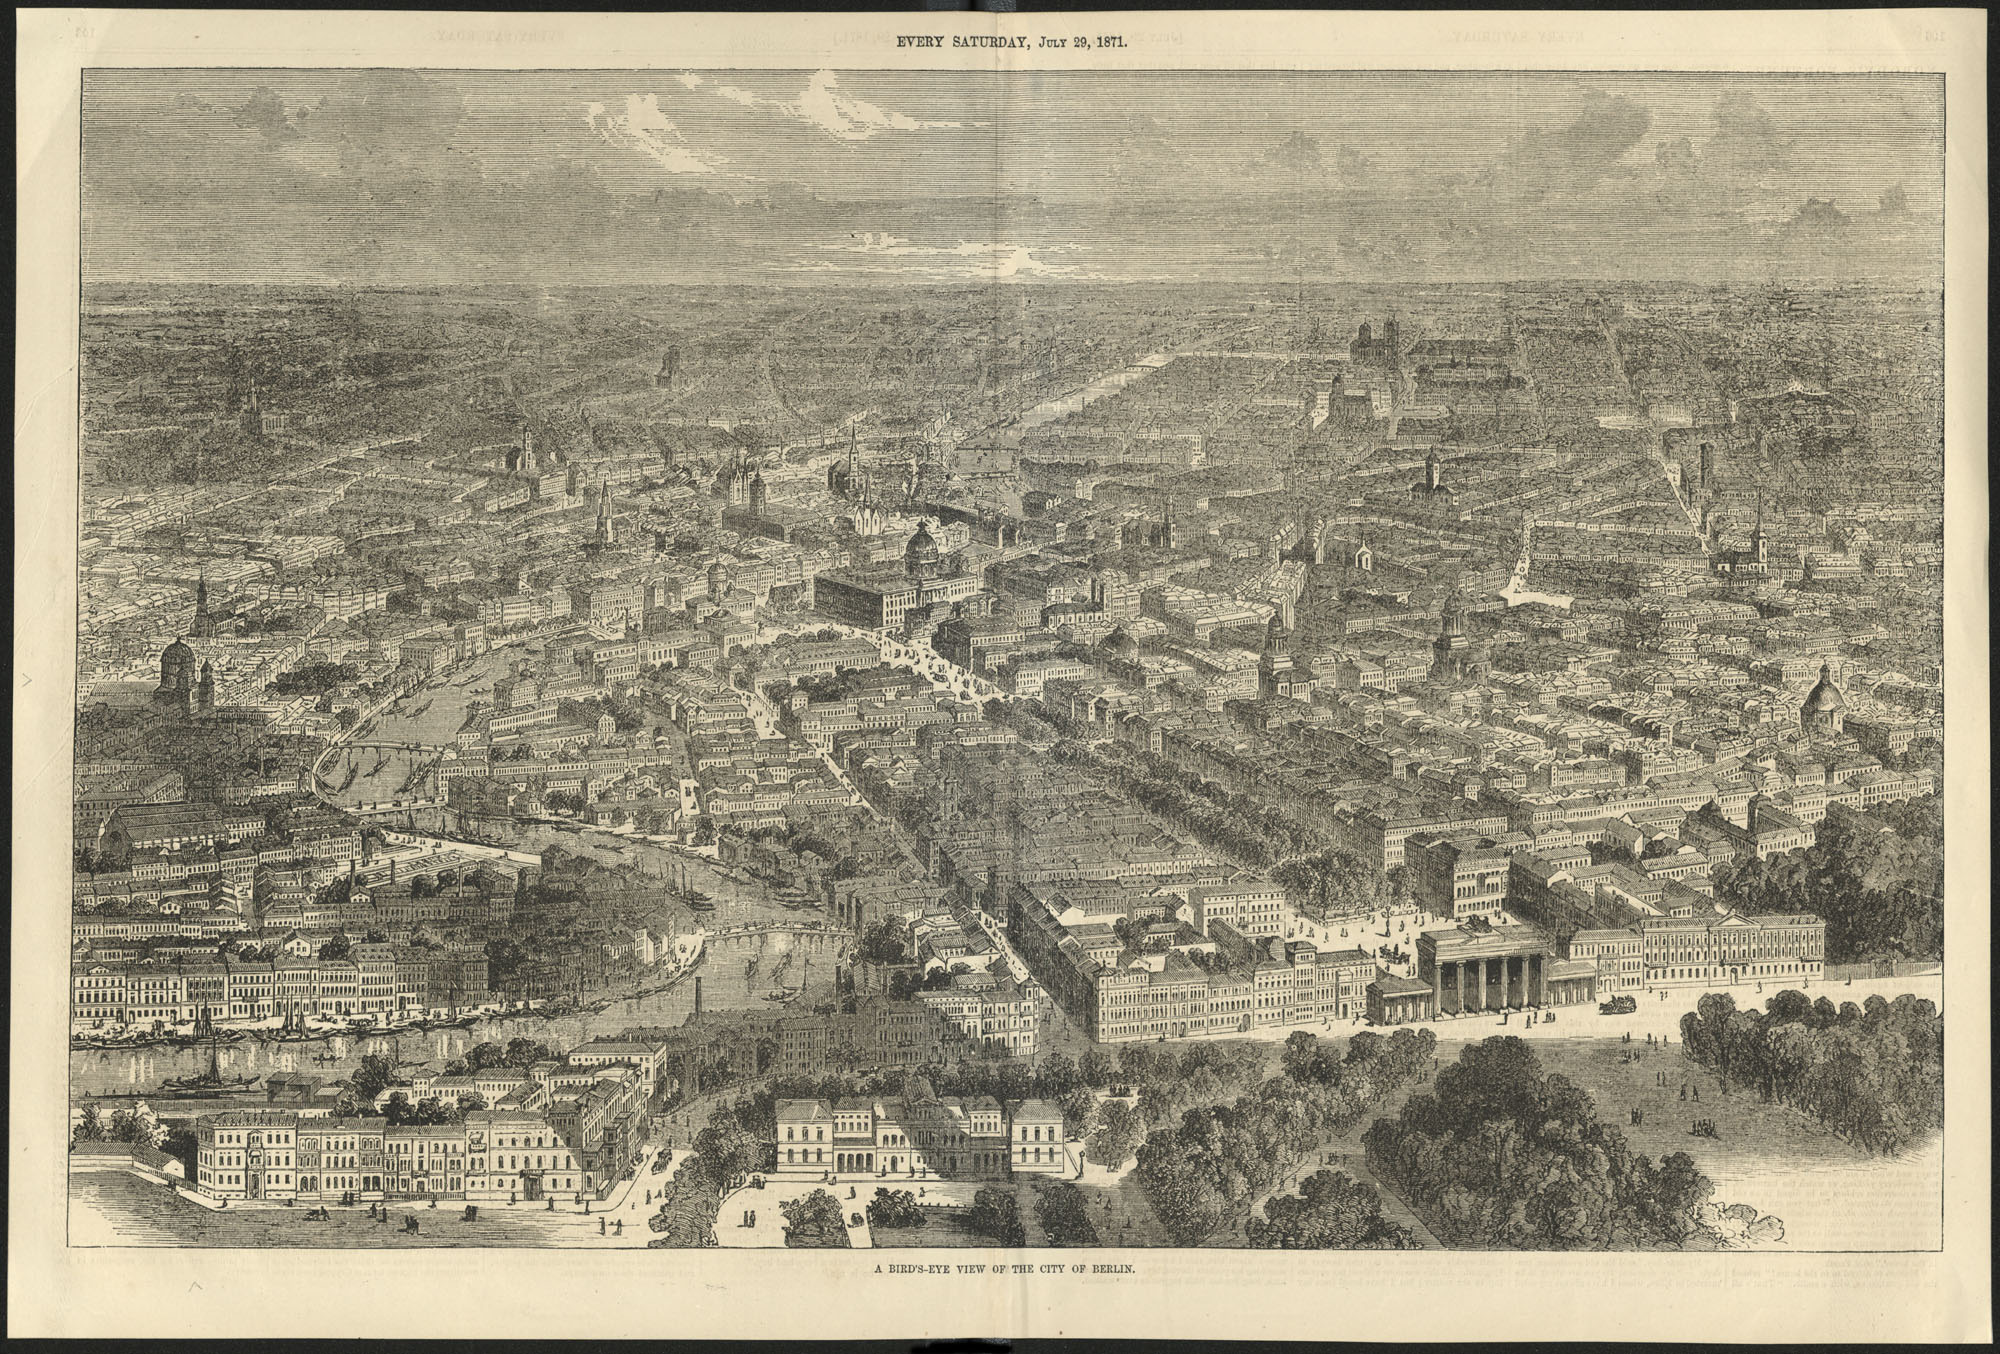 A bird's-eye view of the city of Berlin